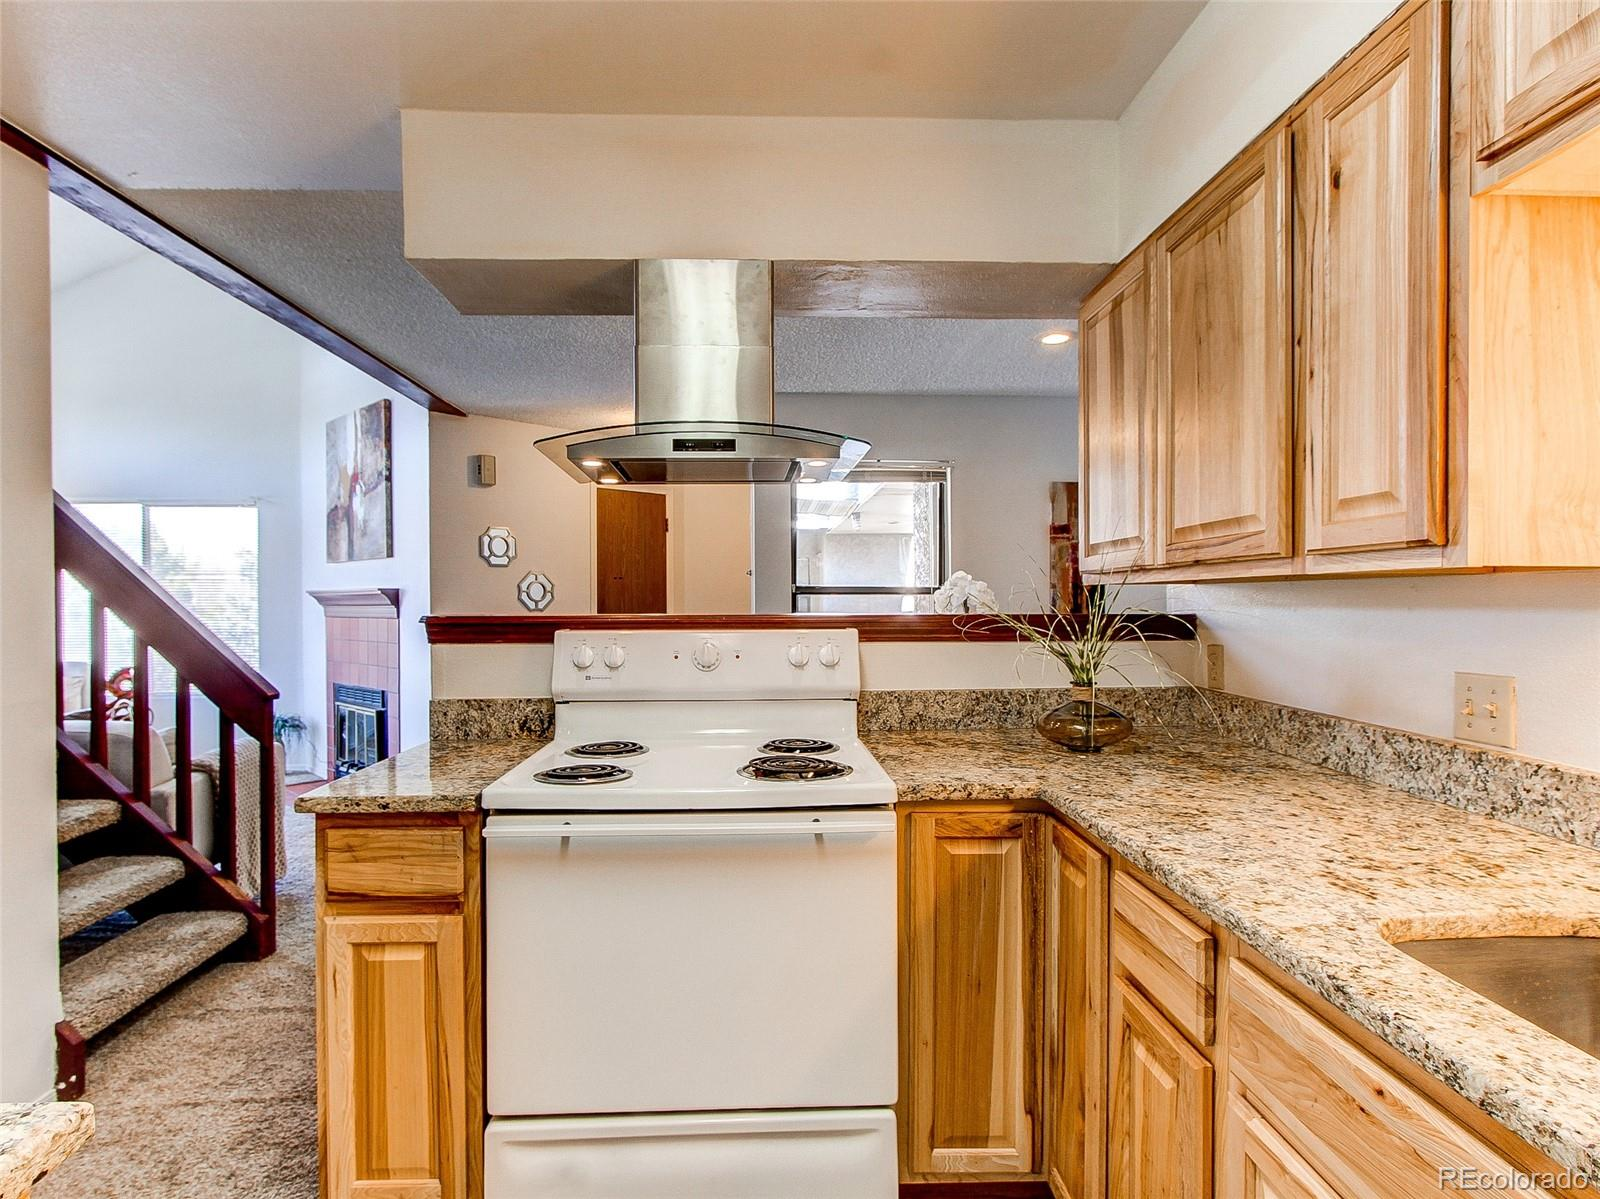 MLS# 7299791 - 4 - 1845 Kendall Street #207C, Lakewood, CO 80214